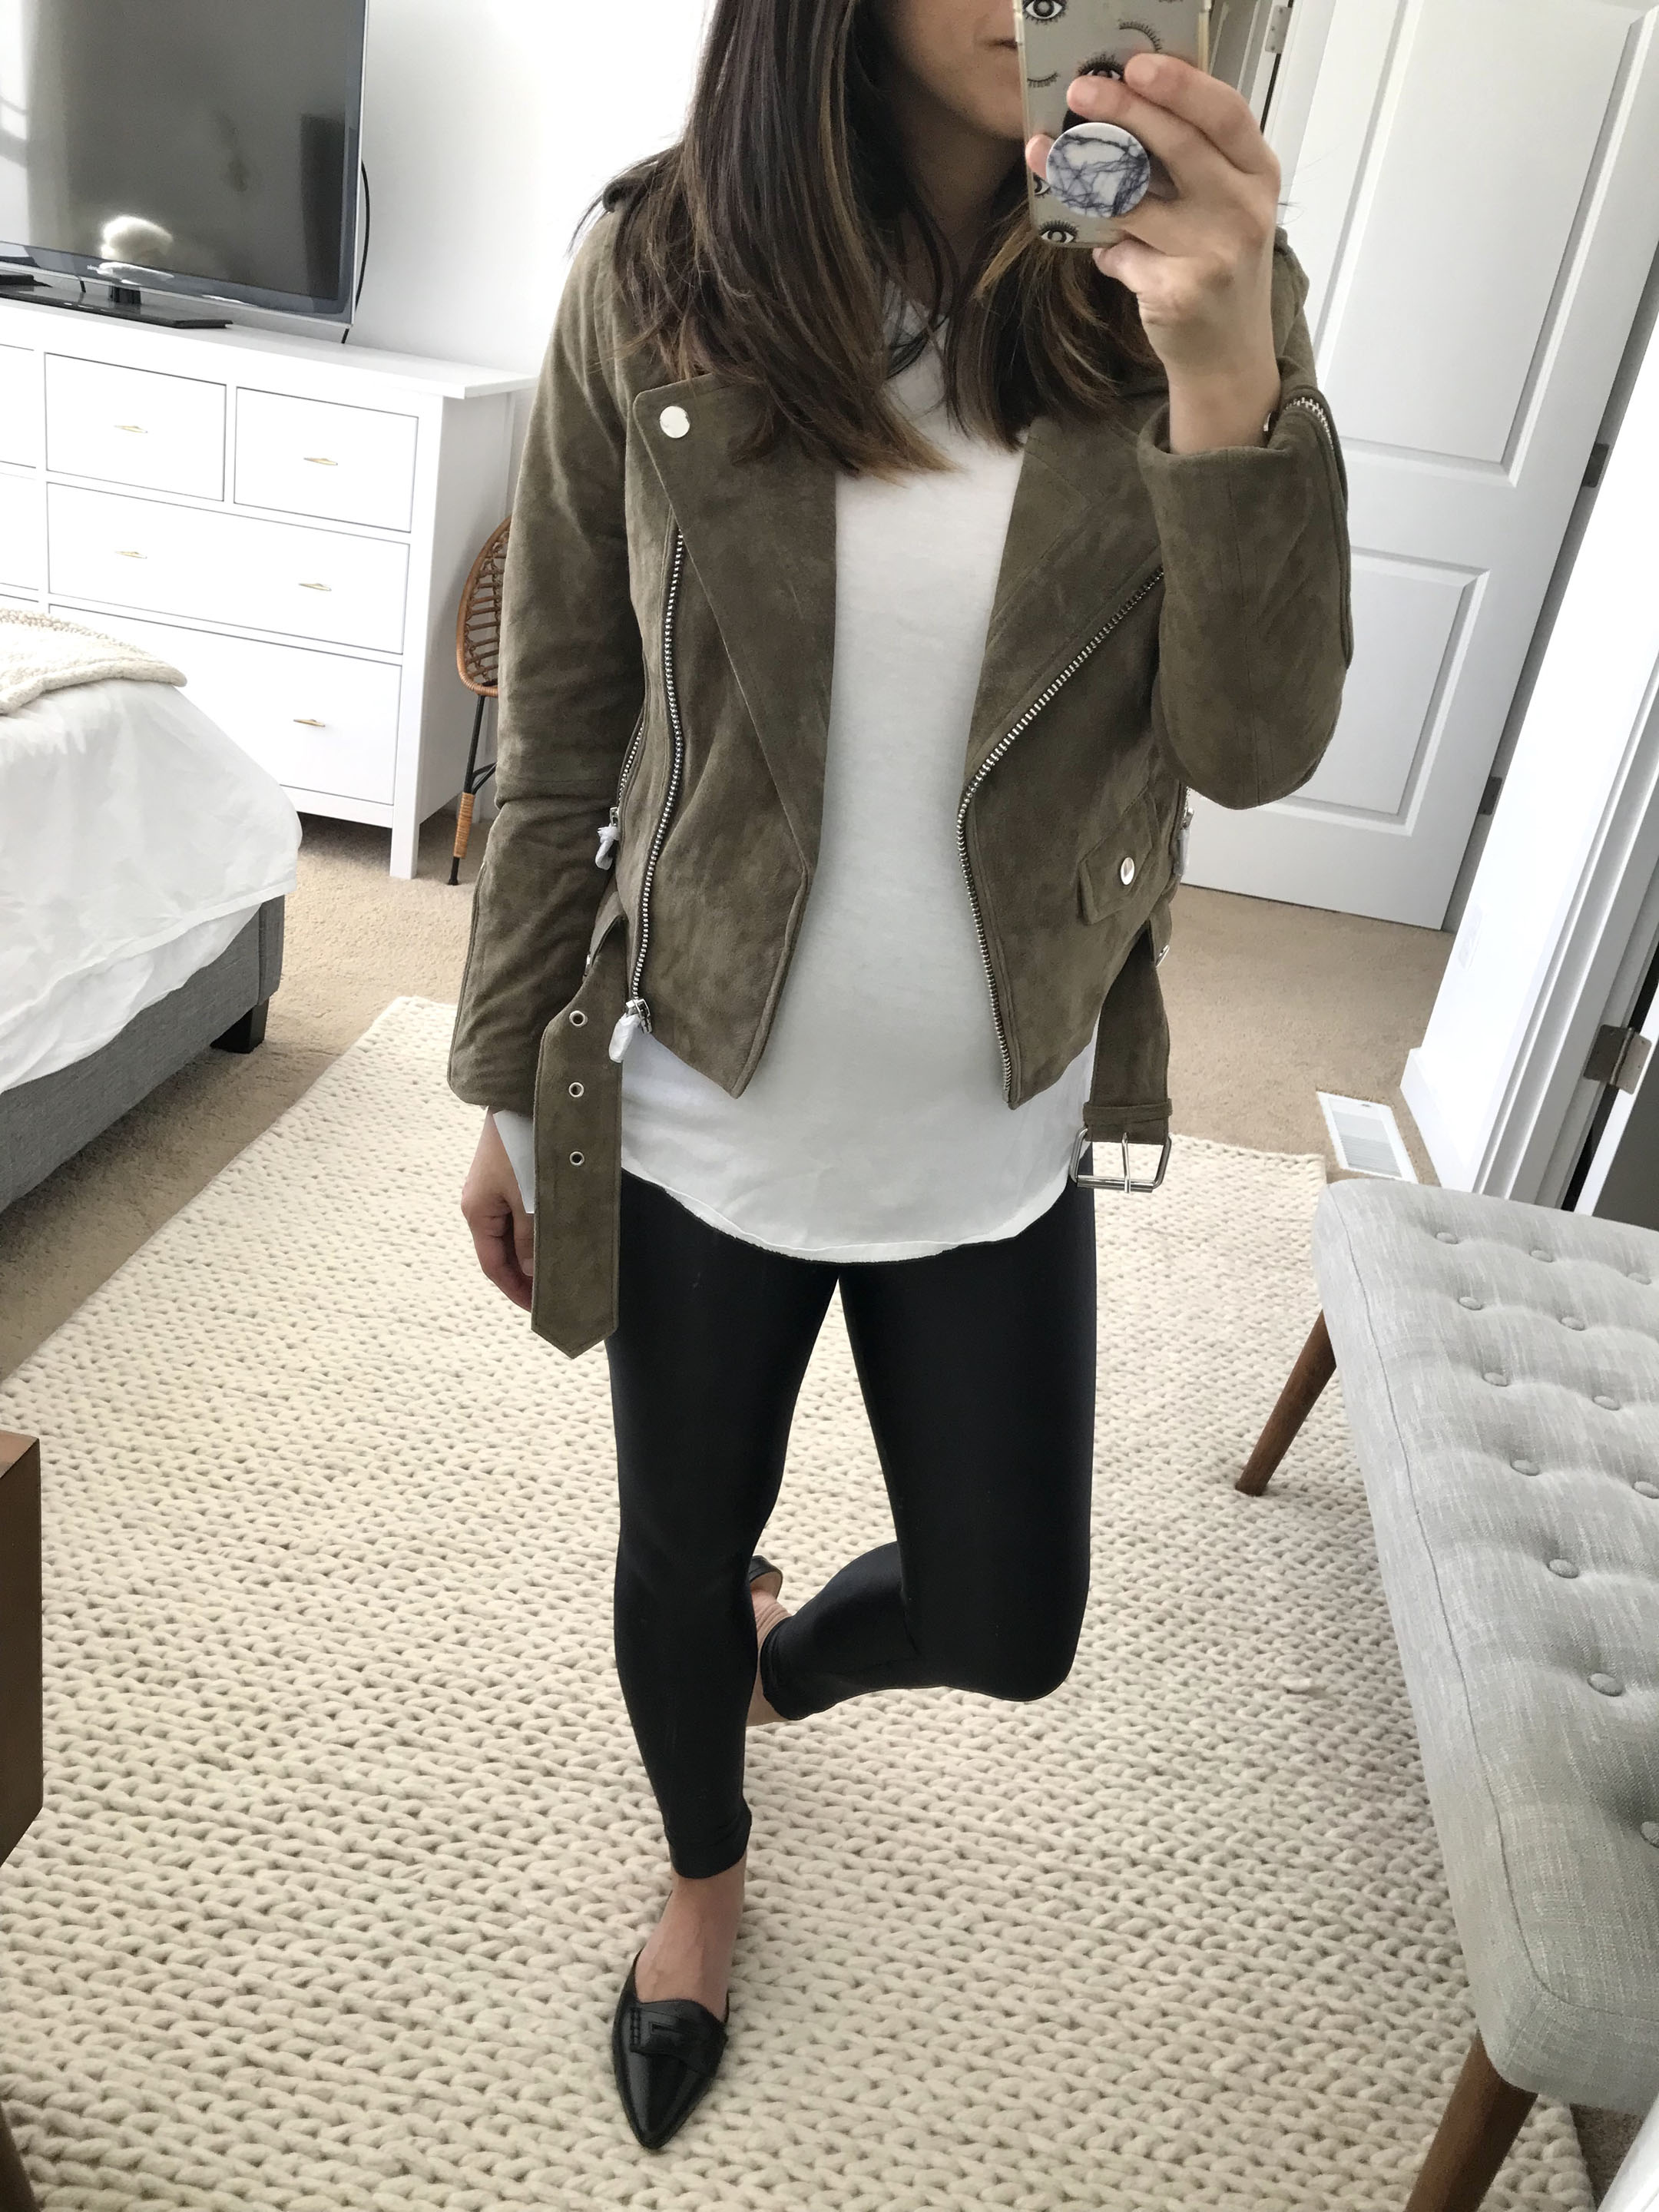 21baccc3c747b Driftwood suede moto jacket 2